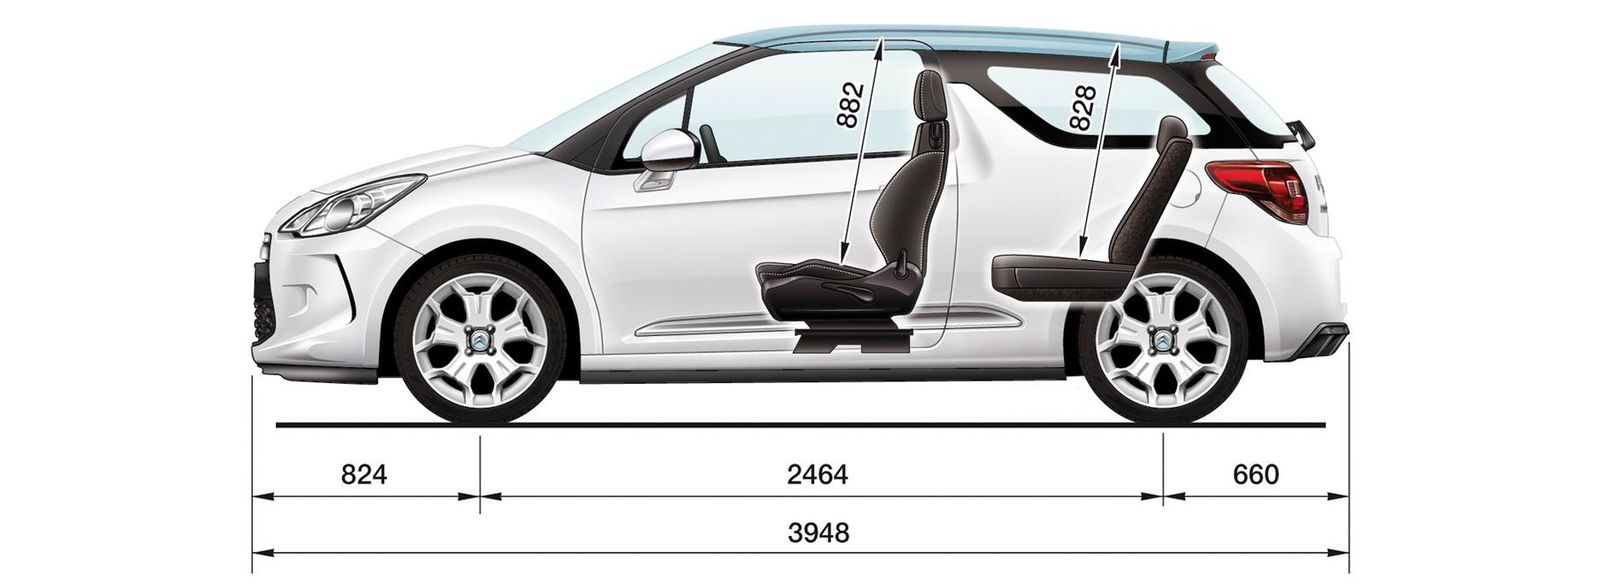 Citroen Ds3 Sizes And Dimensions Guide Carwow